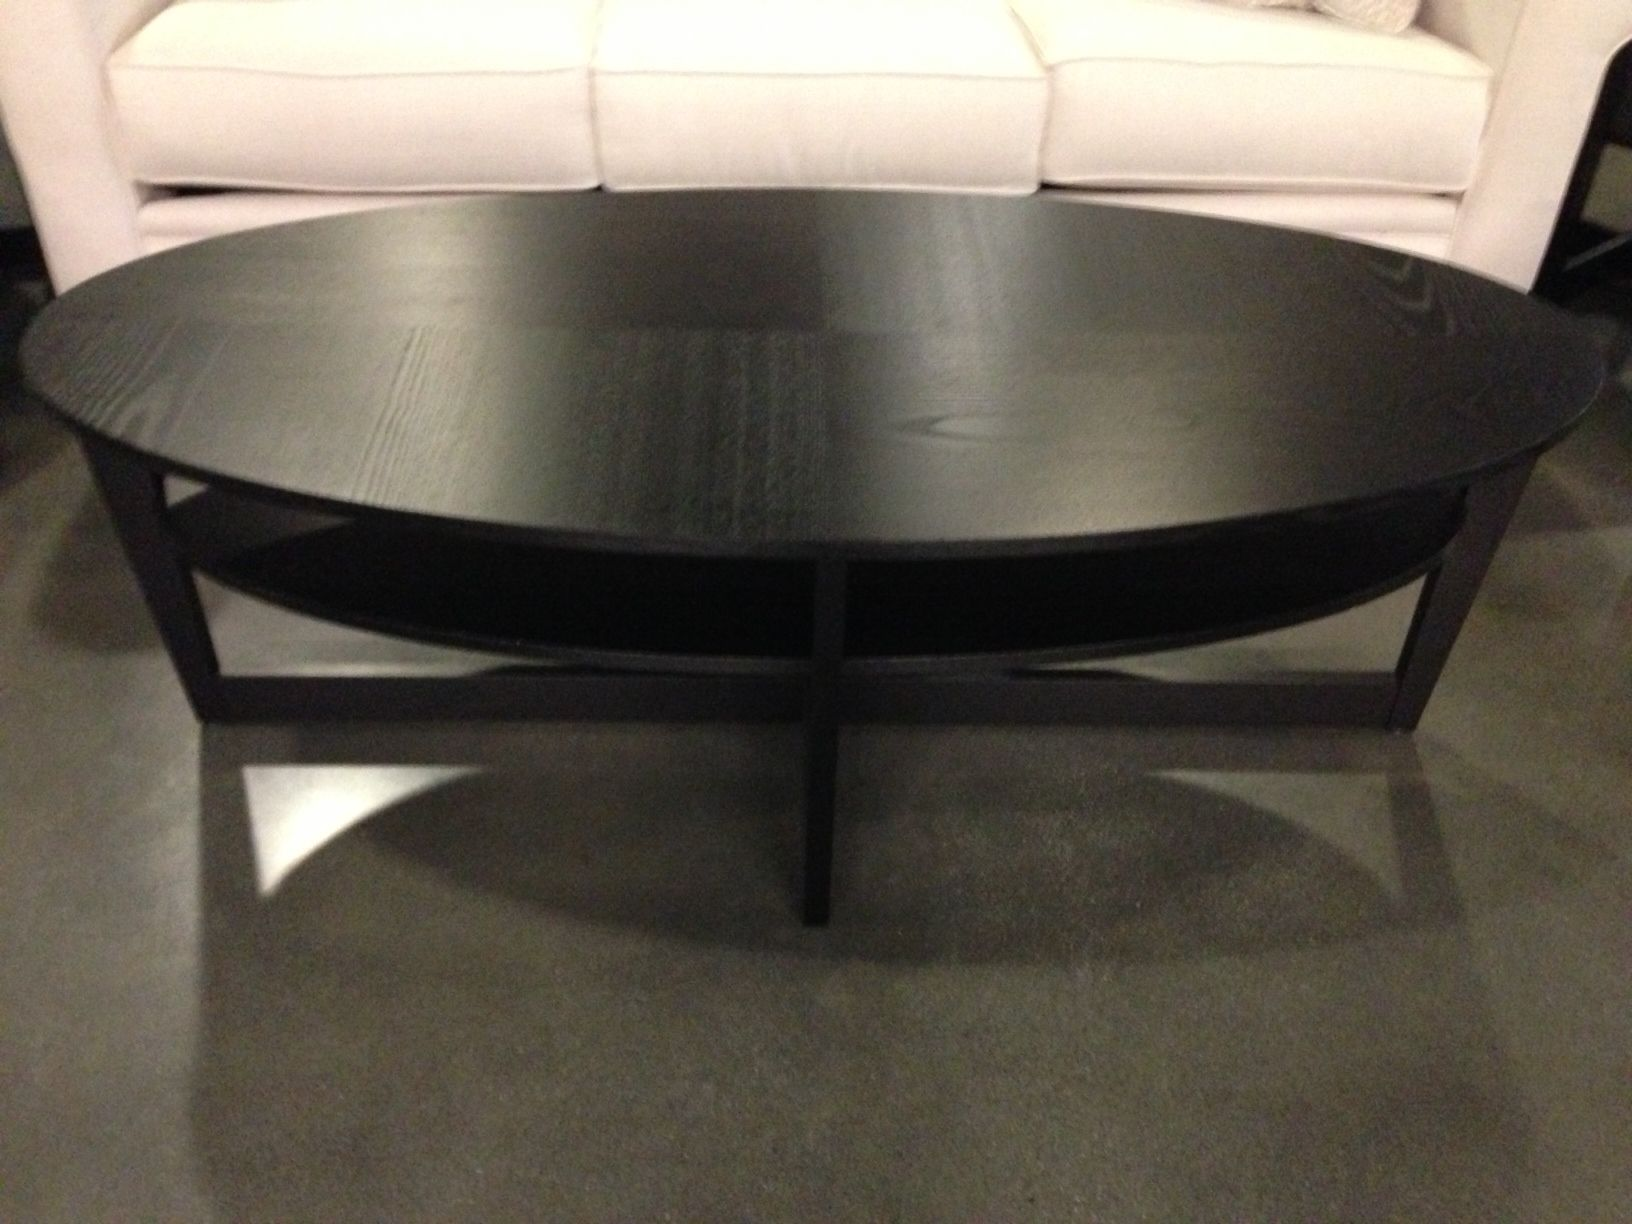 Circle Coffee Table With Storage Download Round Black Coffee Table Full Size Of Coffee Table Ikea Coffee Table Ikea Lack Coffee Table Coffee Table